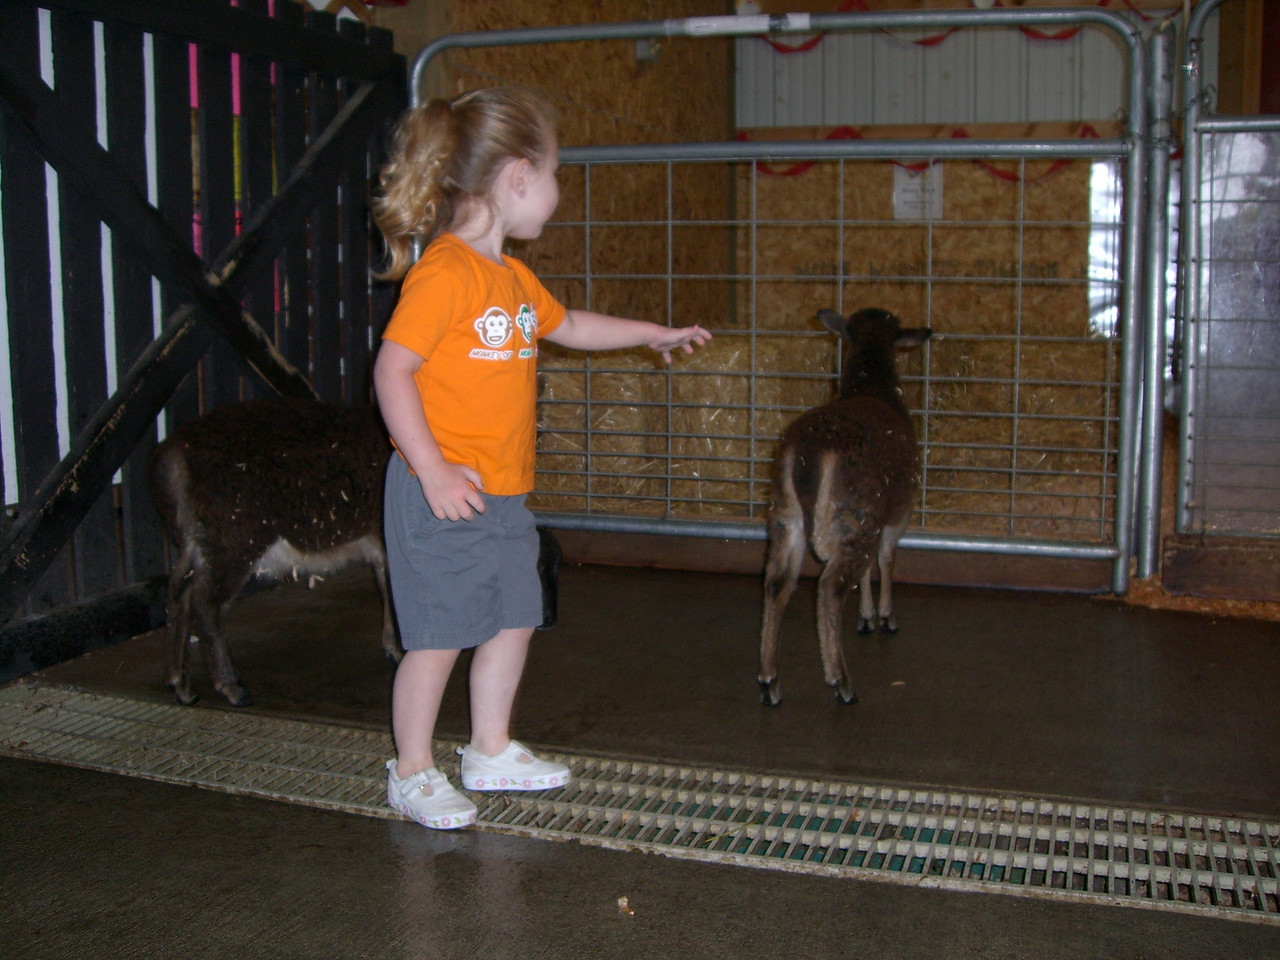 Chasing the goats around the petting zoo at Jennings Park.